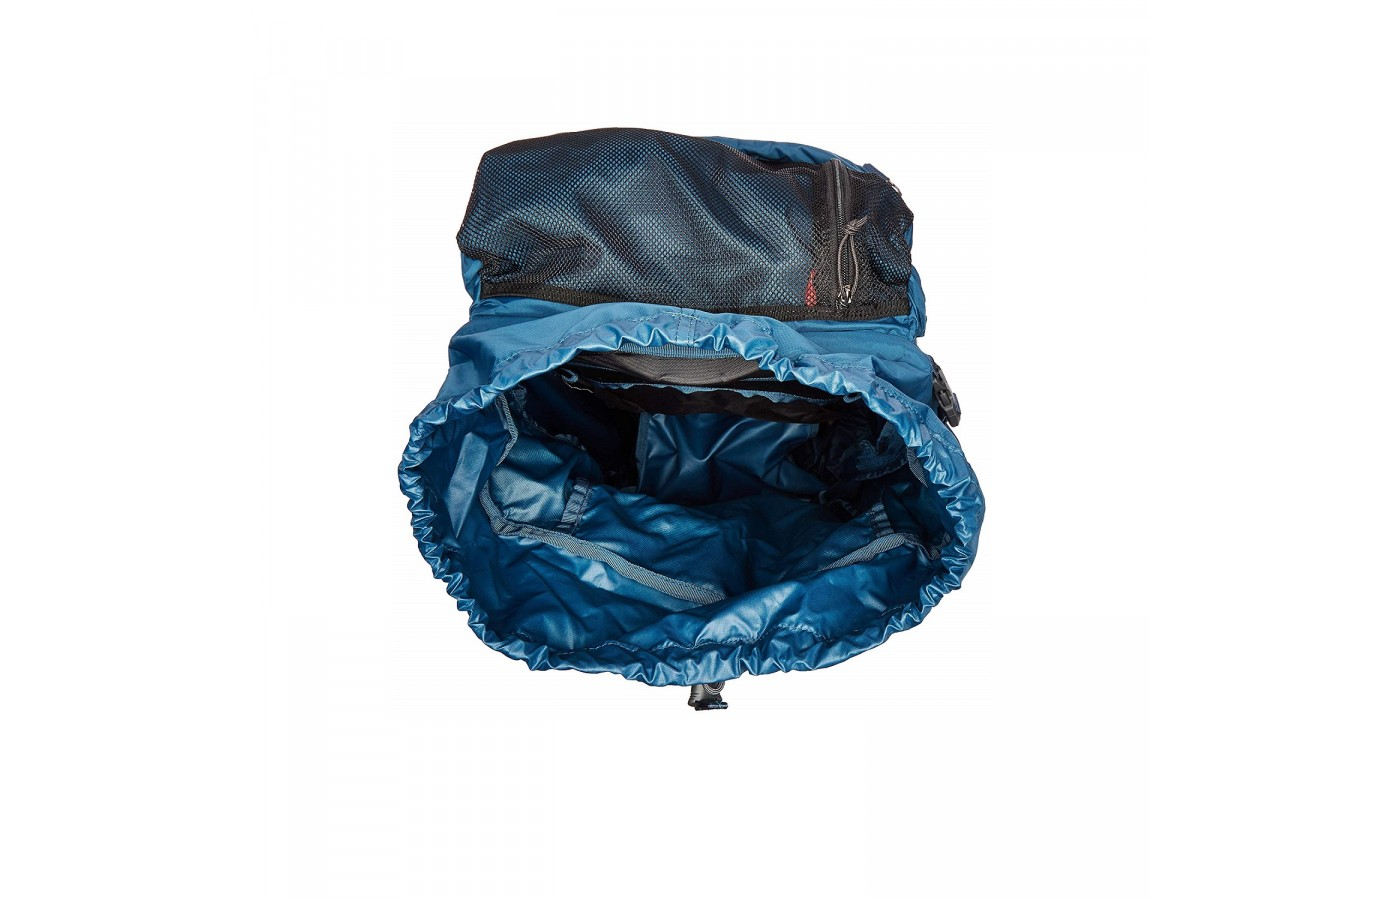 The Osprey Kyte 36 offers an extra large opening for easier packing.